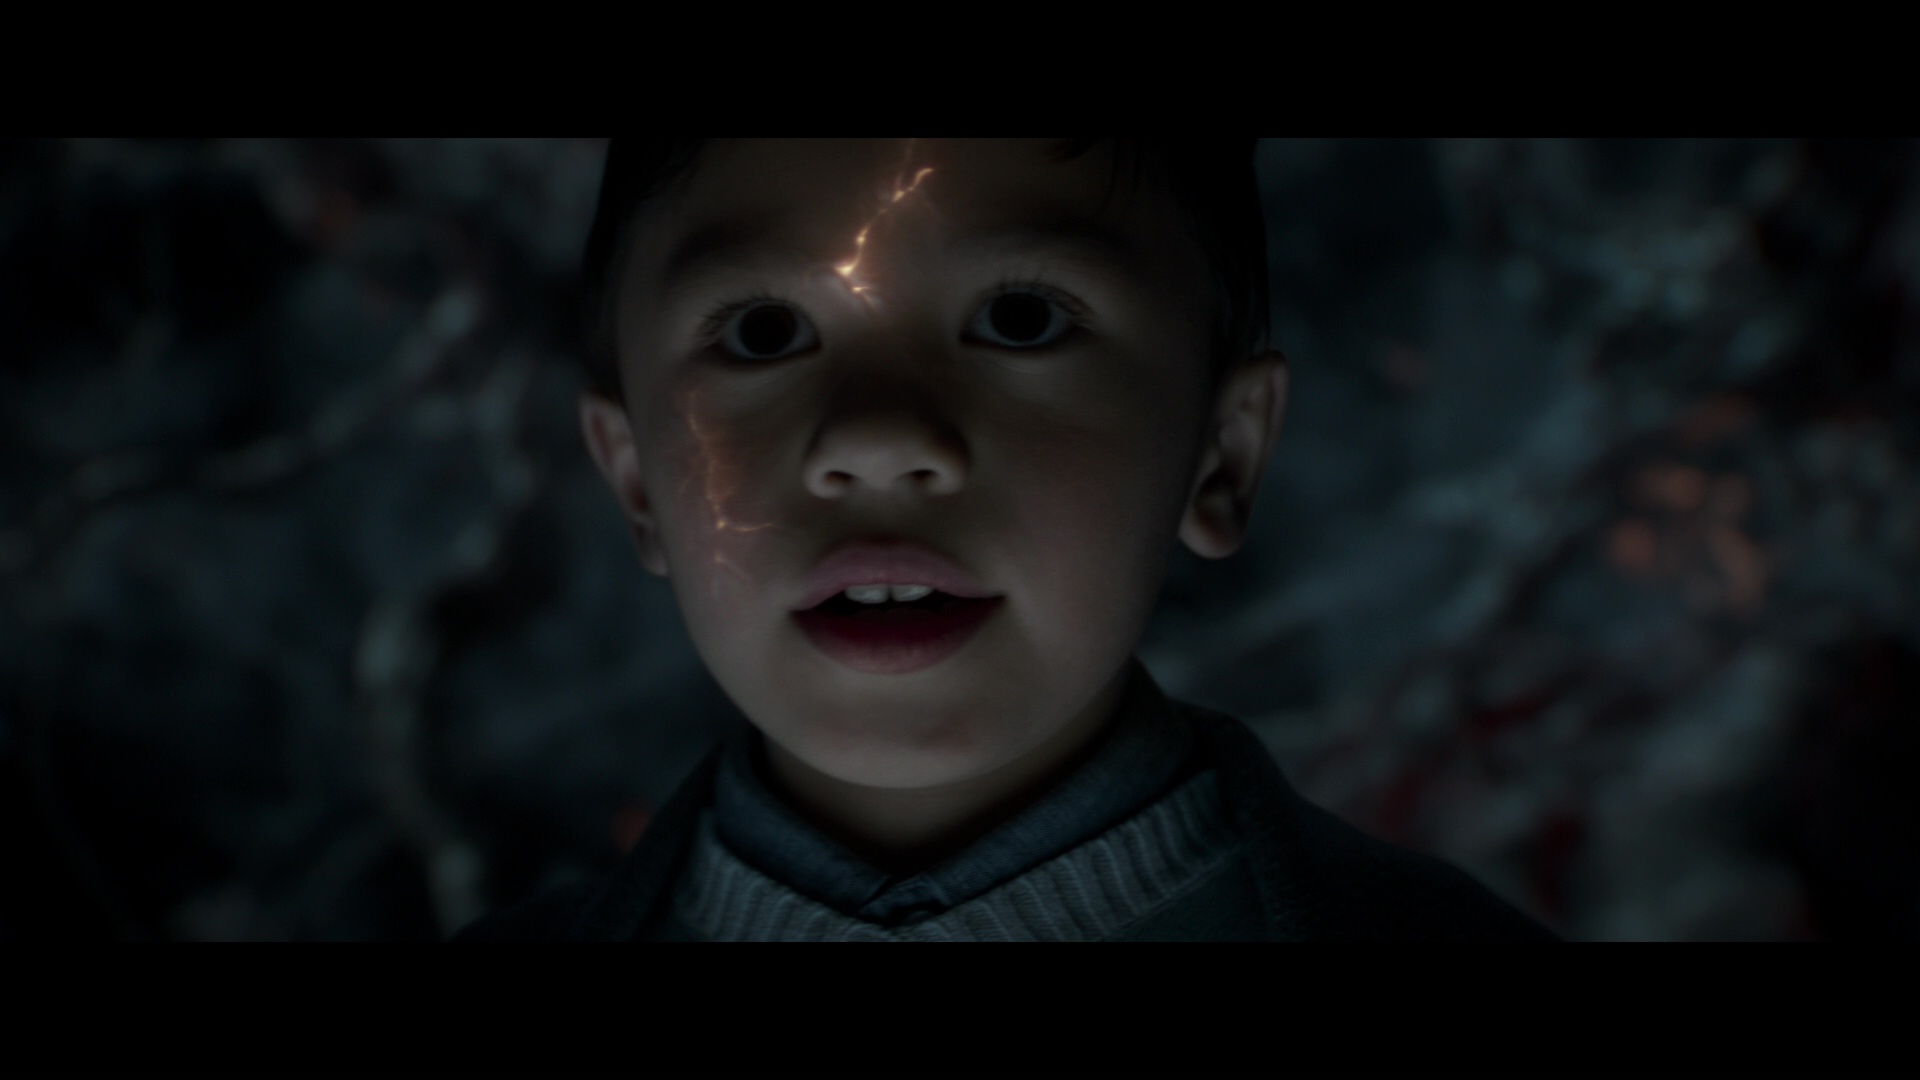 A Wrinkle In Time 2018 Movie Hd Movies 4k Wallpapers: A Wrinkle In Time (2018) 4K UHD Review